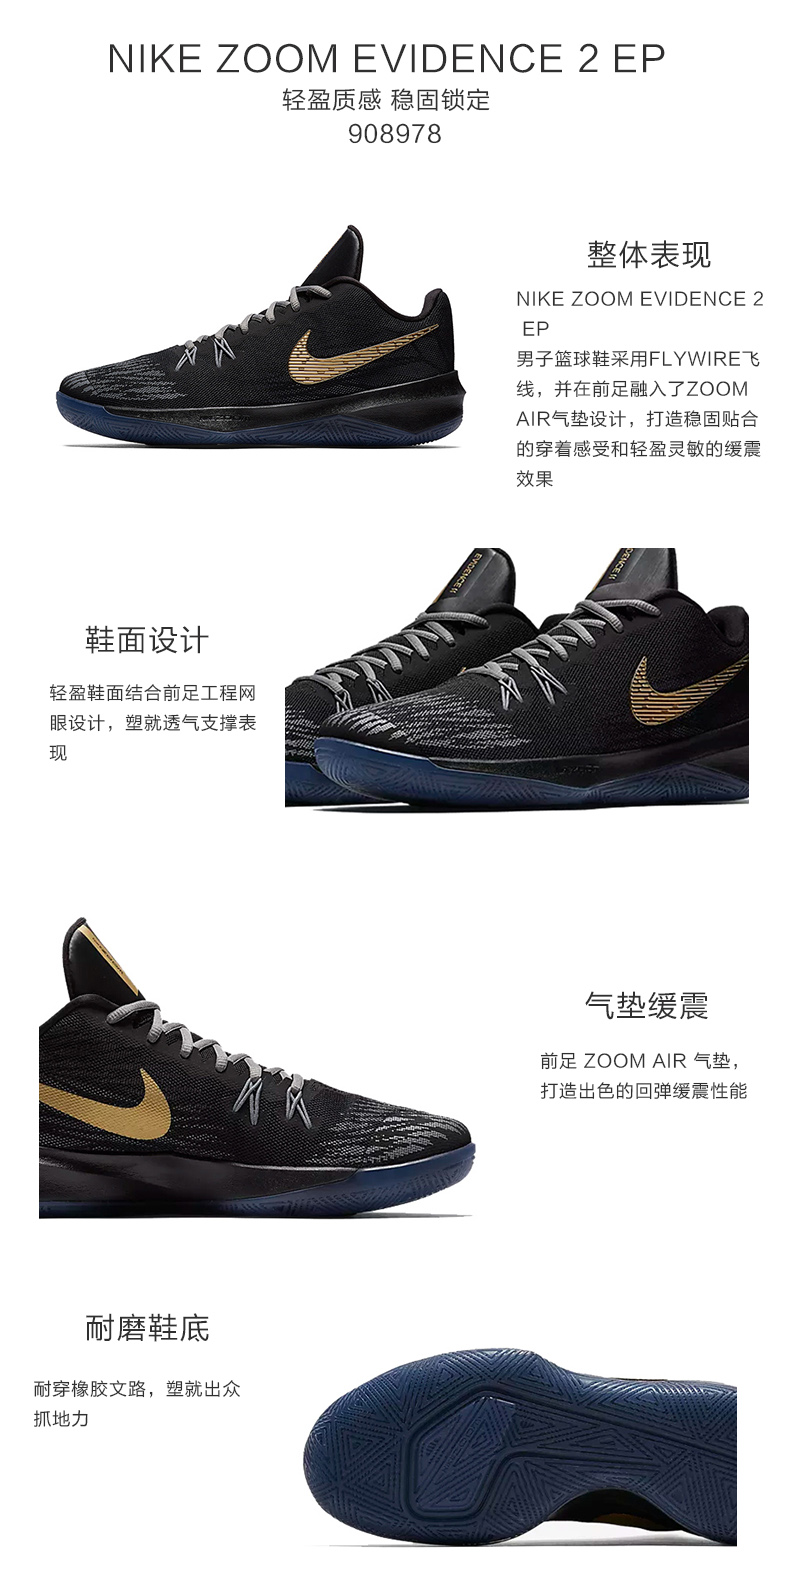 c37e9ee3a84d Nike Nike Zoom Evidence II EP Men s Wear-resistant Outfield Combat ...